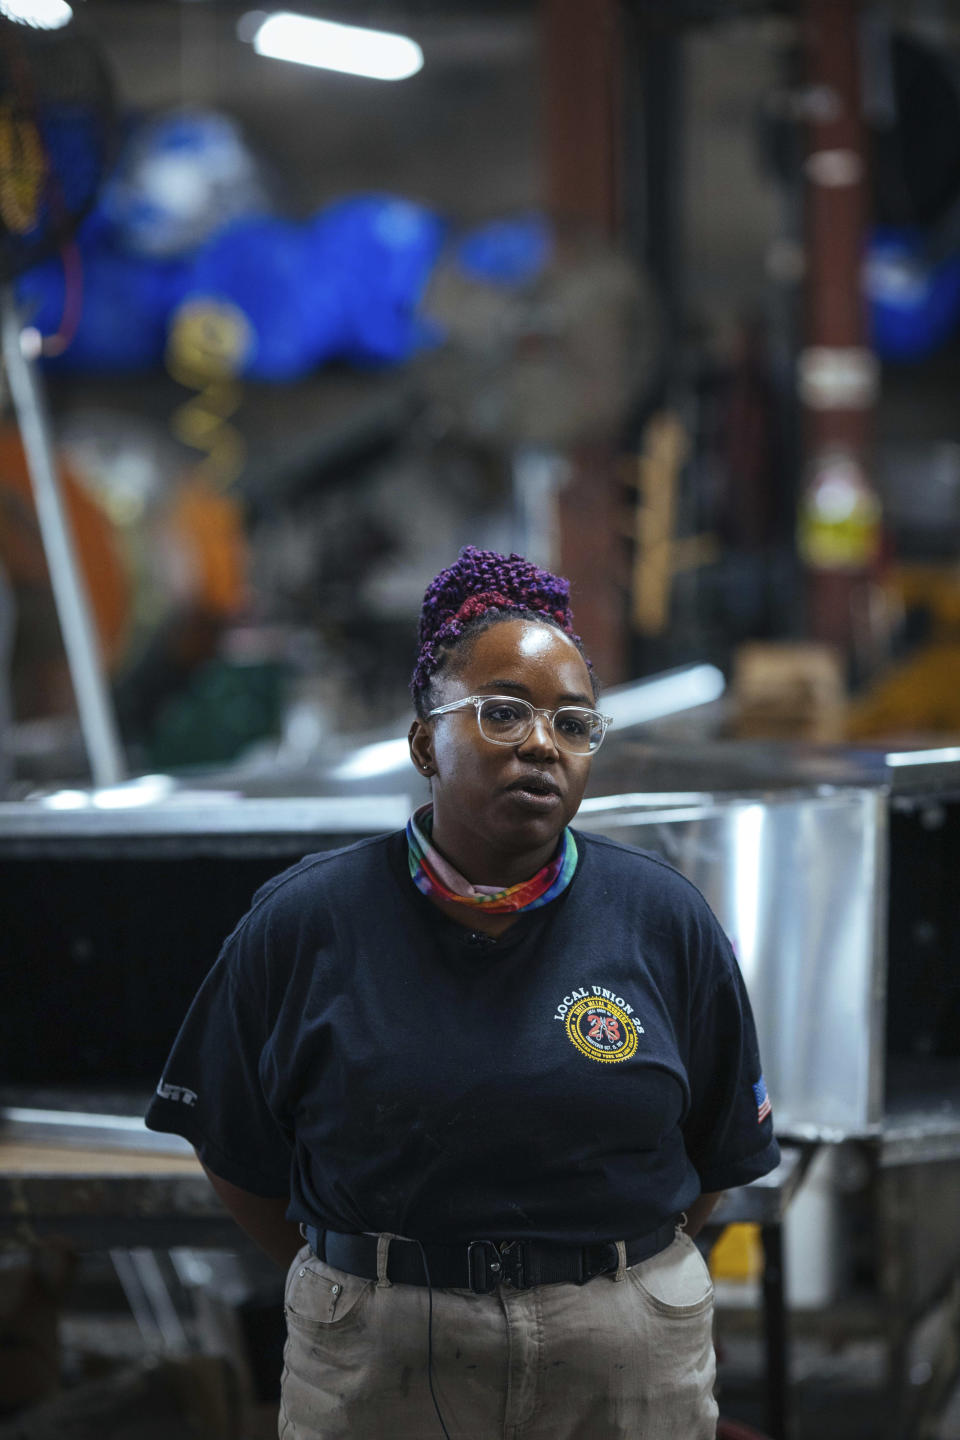 Sheet metal worker Carey Mercer at Contractors Sheet Metal on Tuesday, Aug. 3, 2021, in New York. The construction industry is fighting to recruit more women into a sector that faces chronic labor shortages. Women make up only 4% of skilled construction laborers in the U.S. and often face discrimination on jobs sites. (AP Photo/Kevin Hagen)